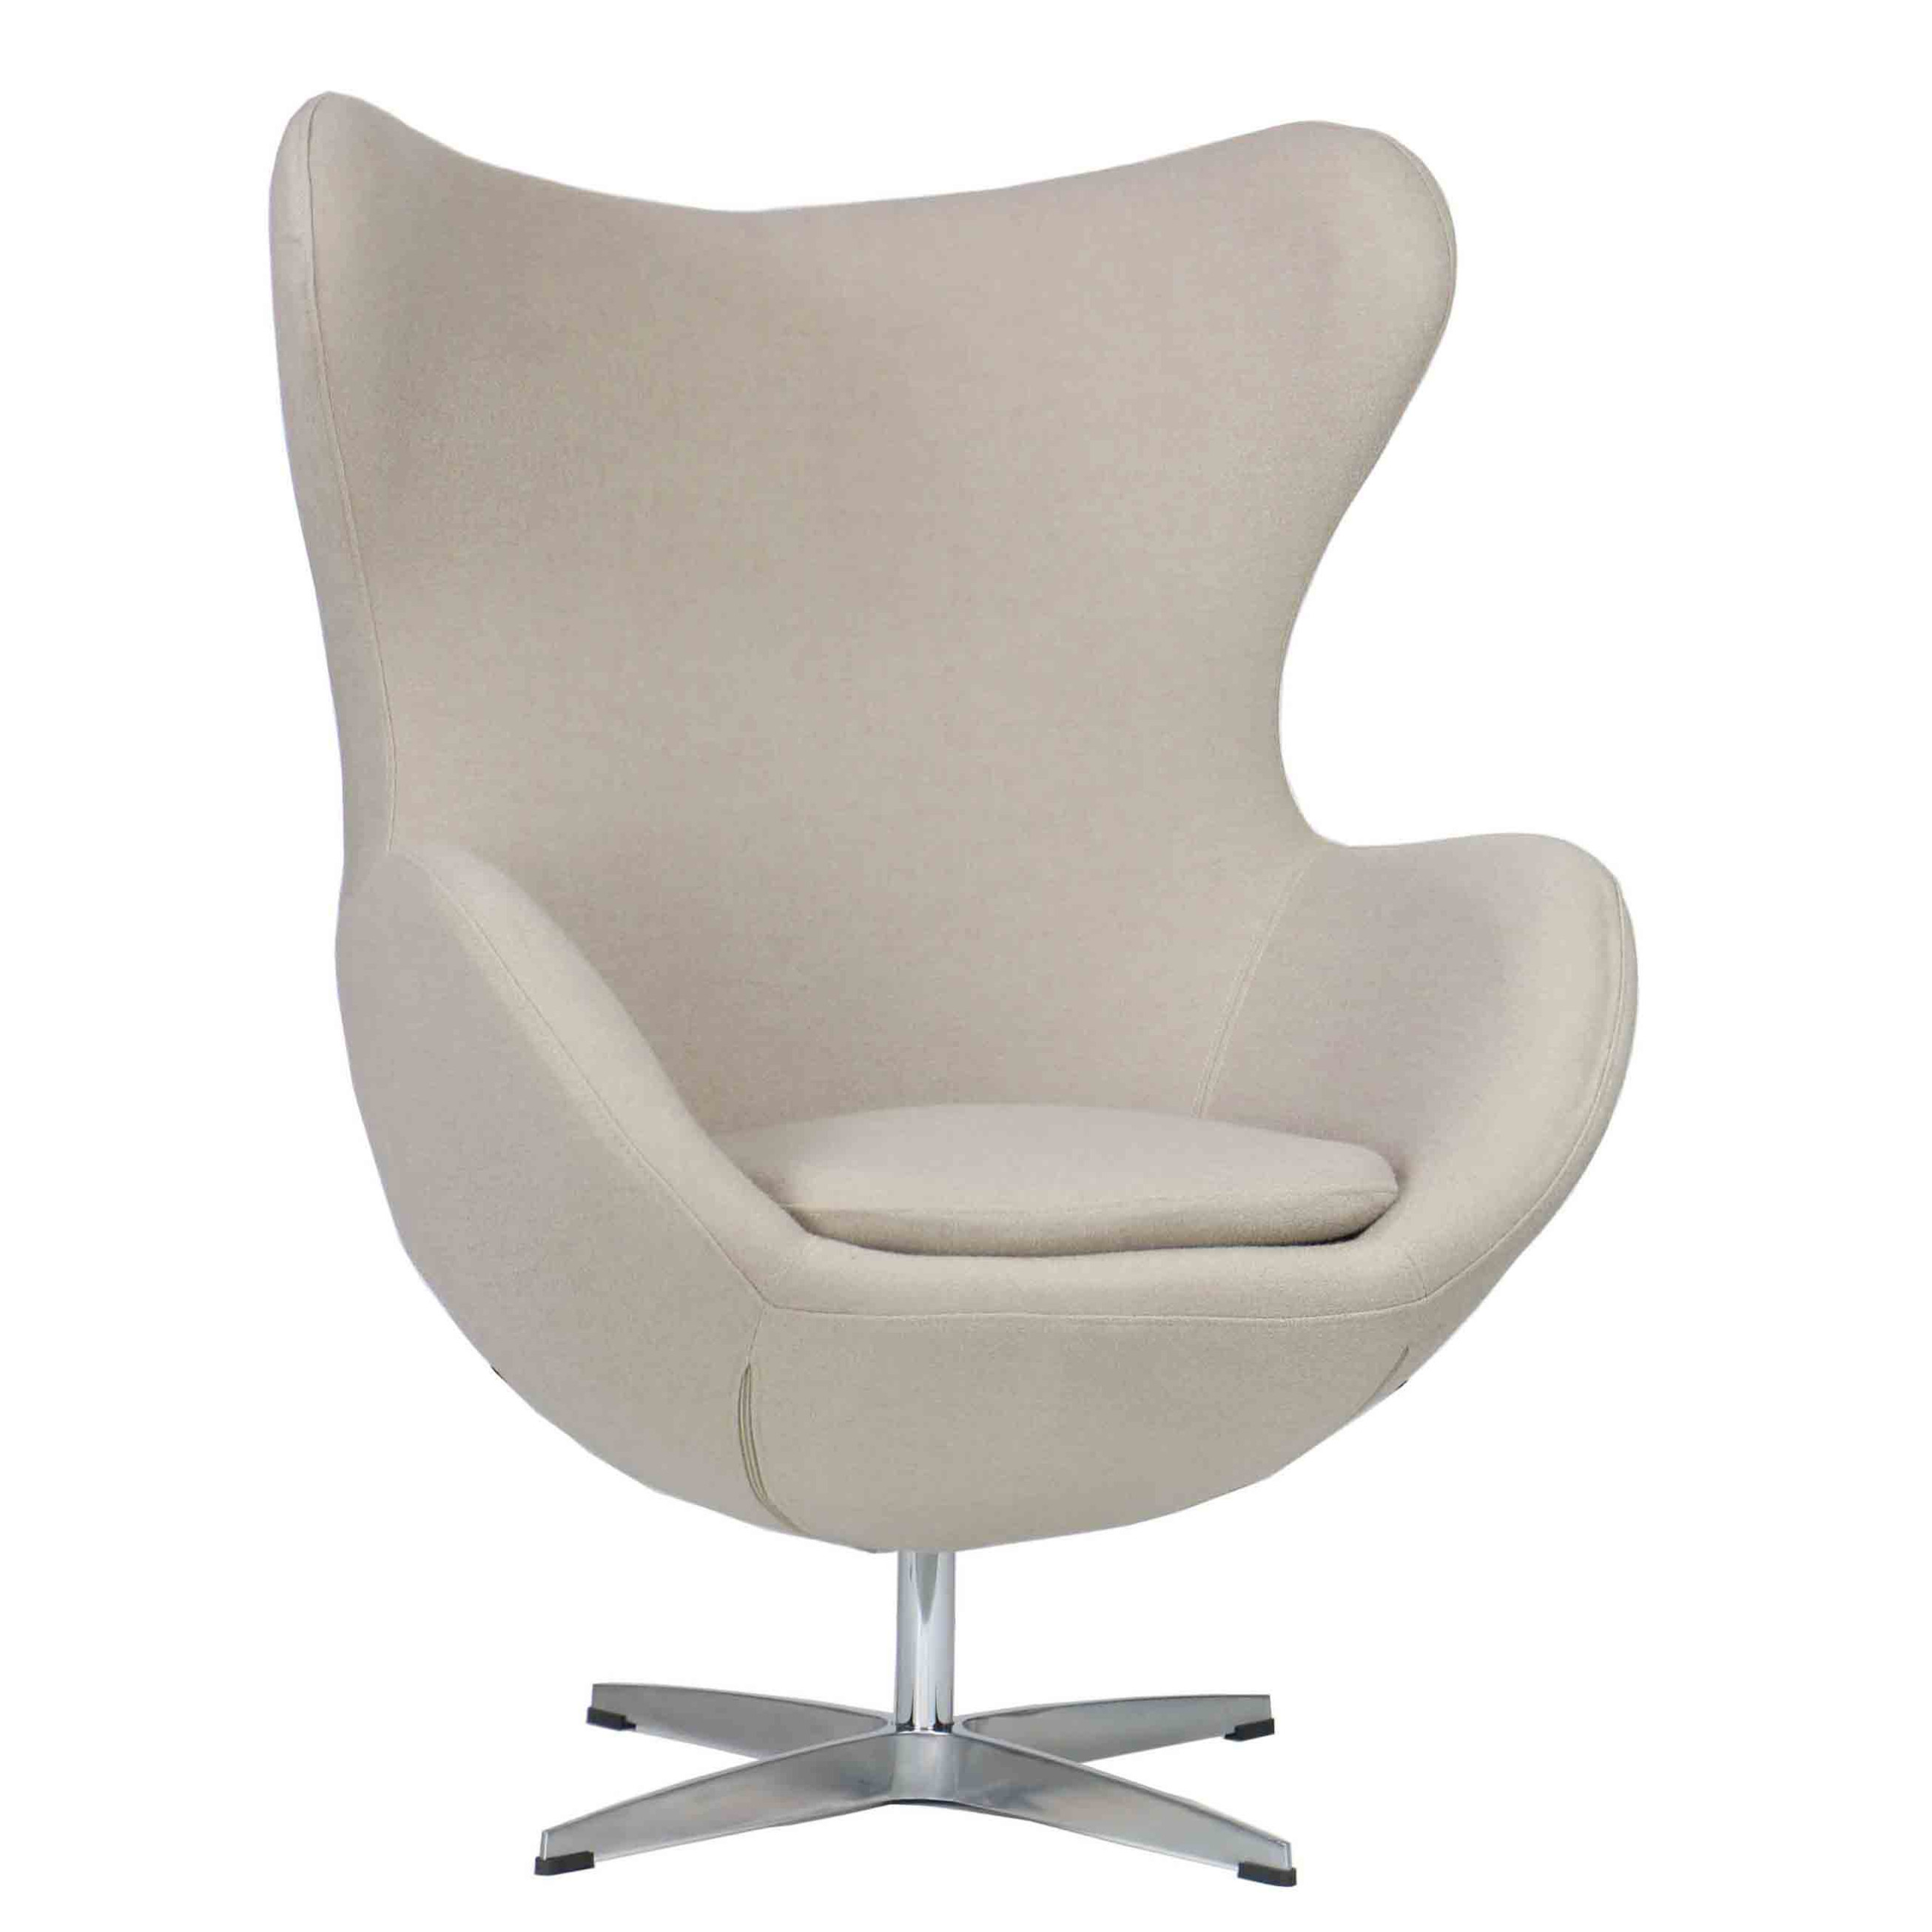 Affordable Egg Chair Designer Replica Egg Chair In Cream